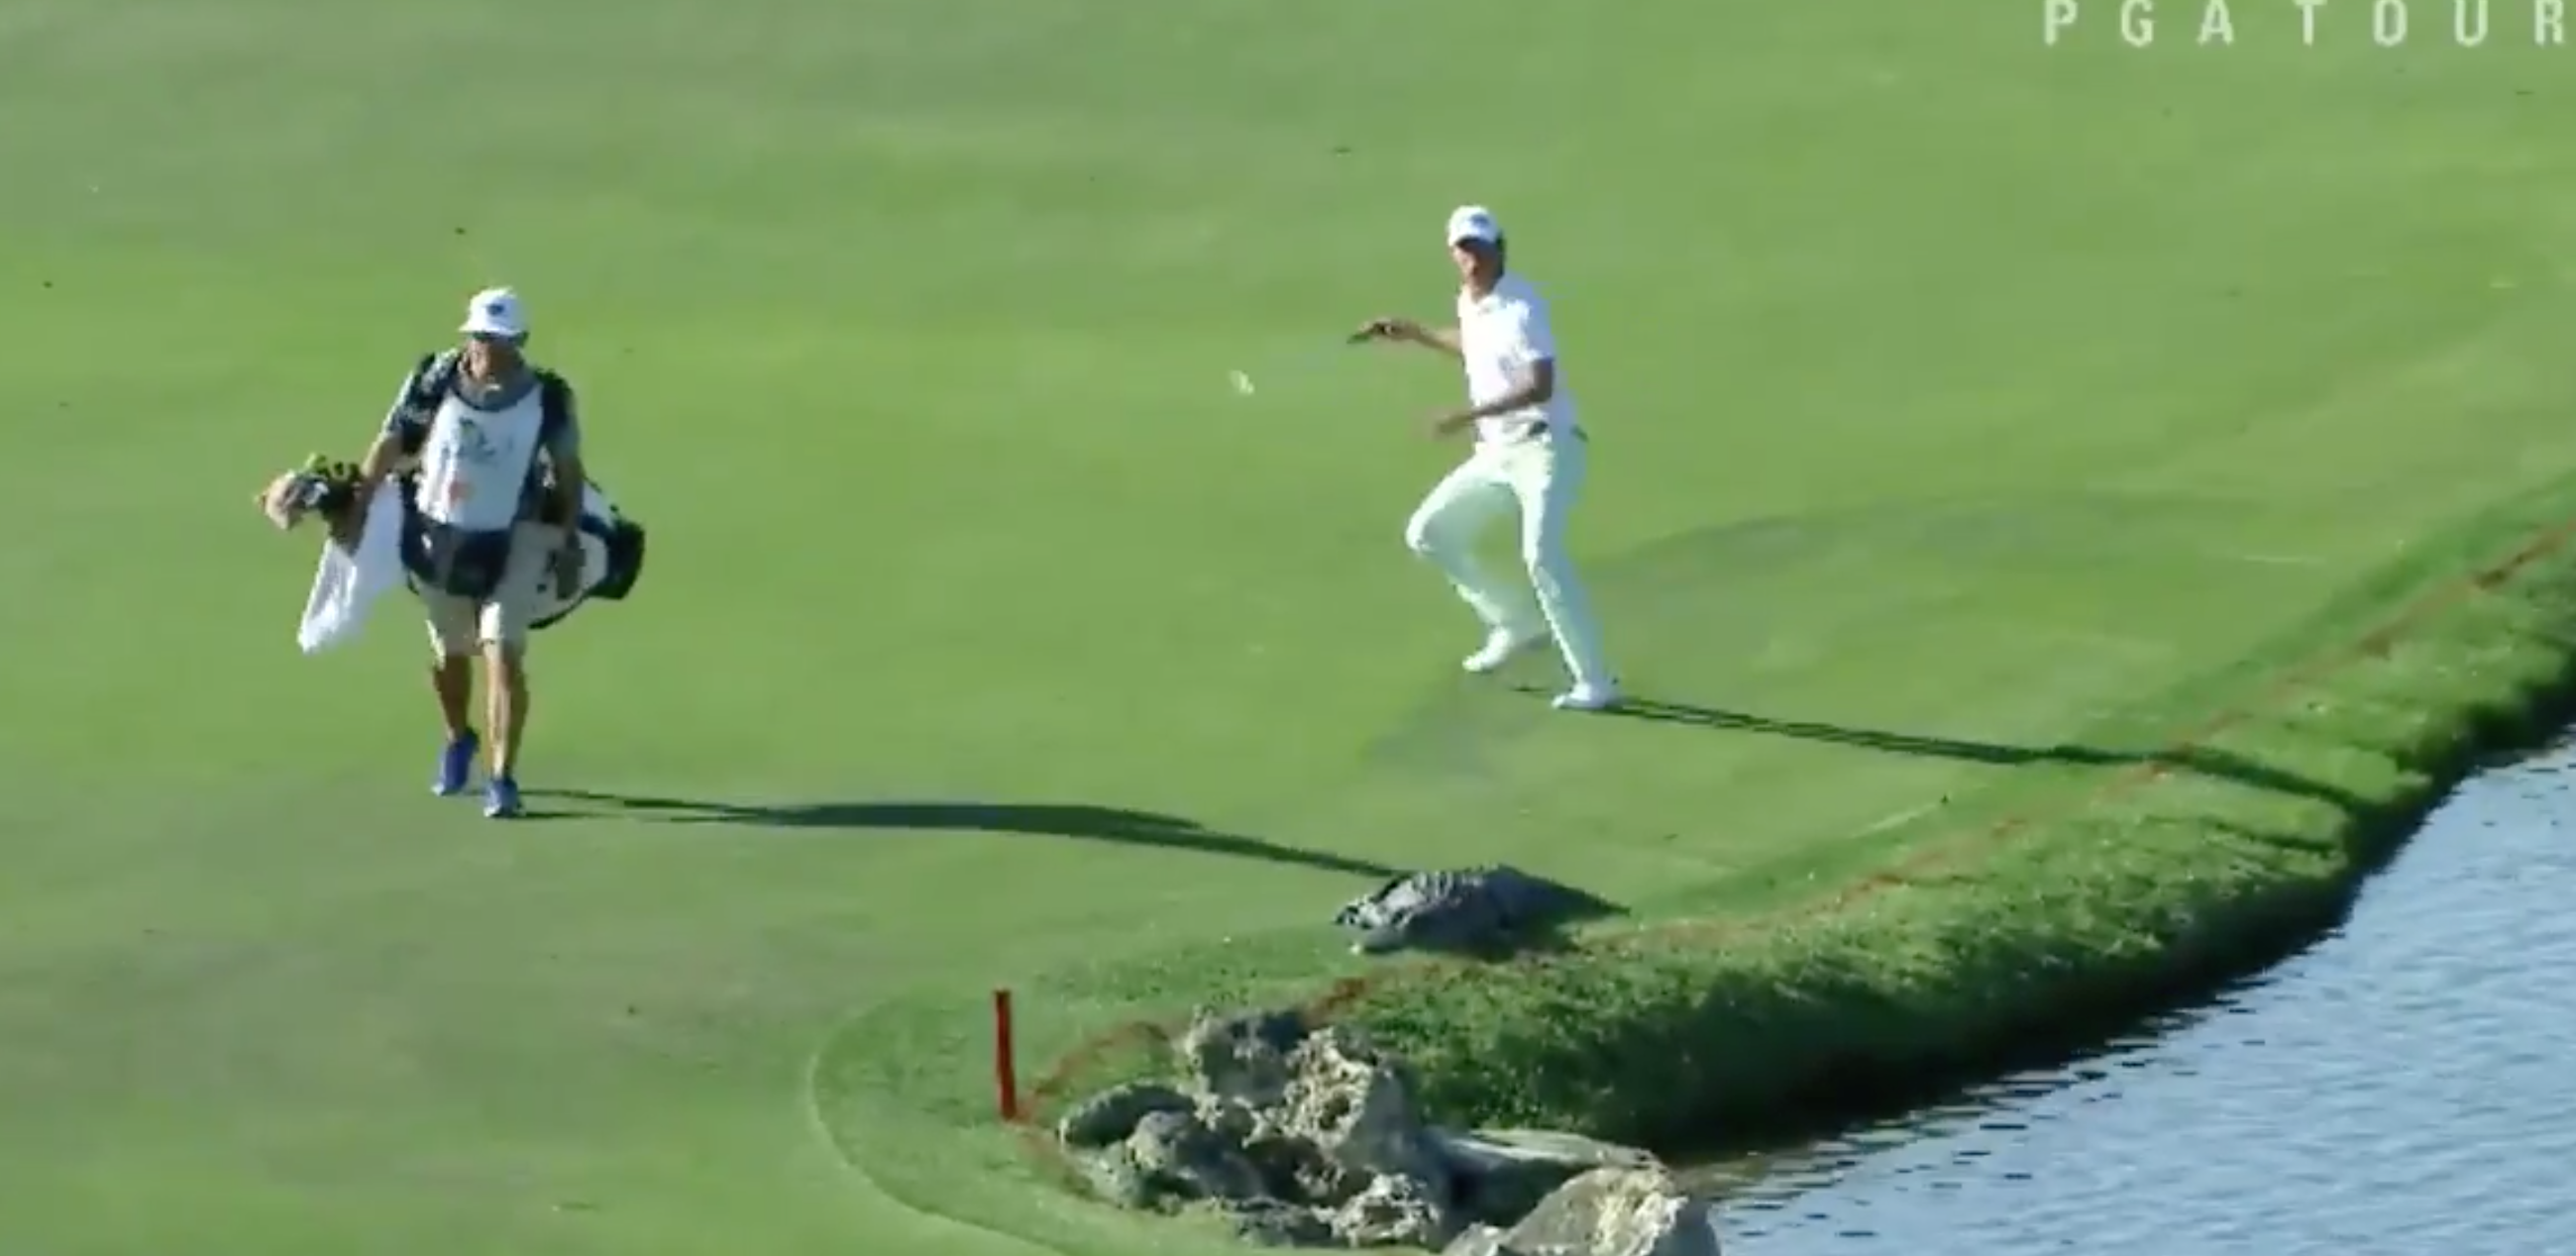 Smylie Kaufman didn't even see the alligator coming.